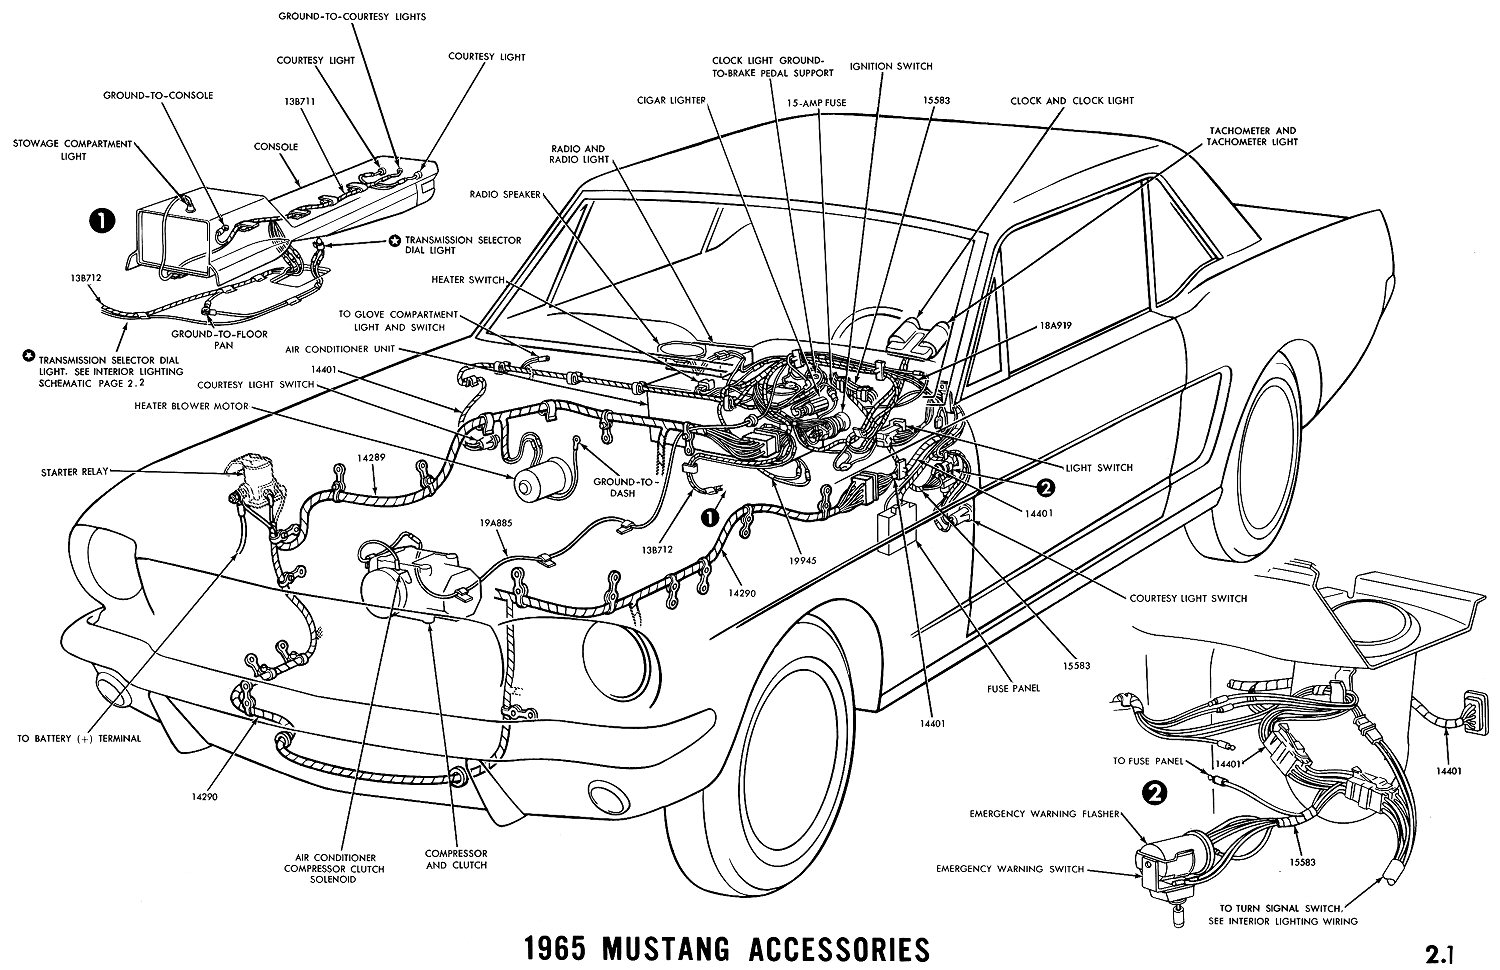 hight resolution of 1965 mustang accessories pictorial or schematic